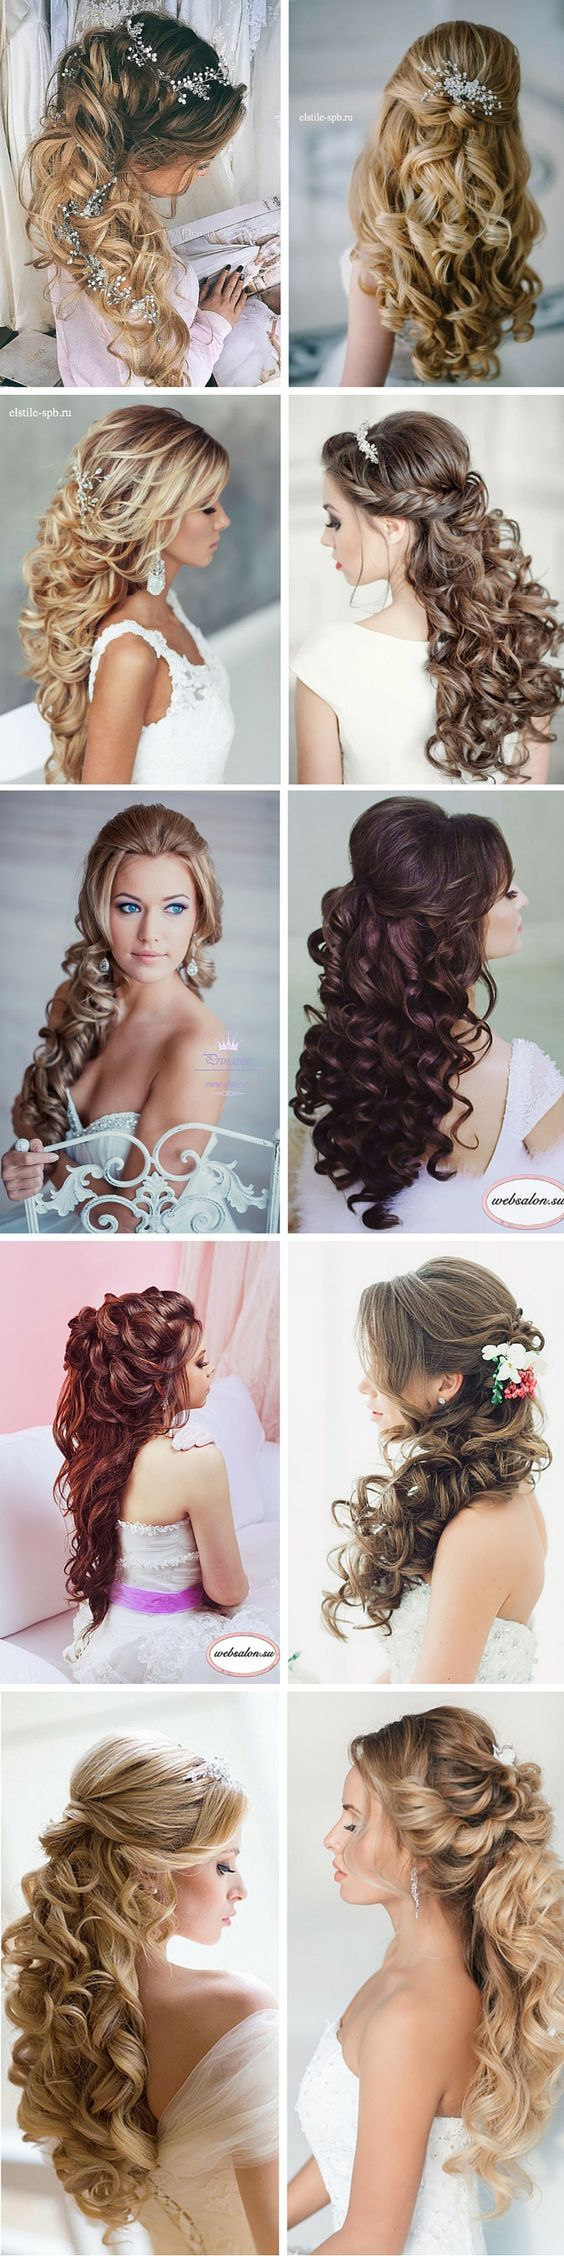 Fine 1000 Ideas About Long Hair Updos On Pinterest Quinceanera Short Hairstyles For Black Women Fulllsitofus